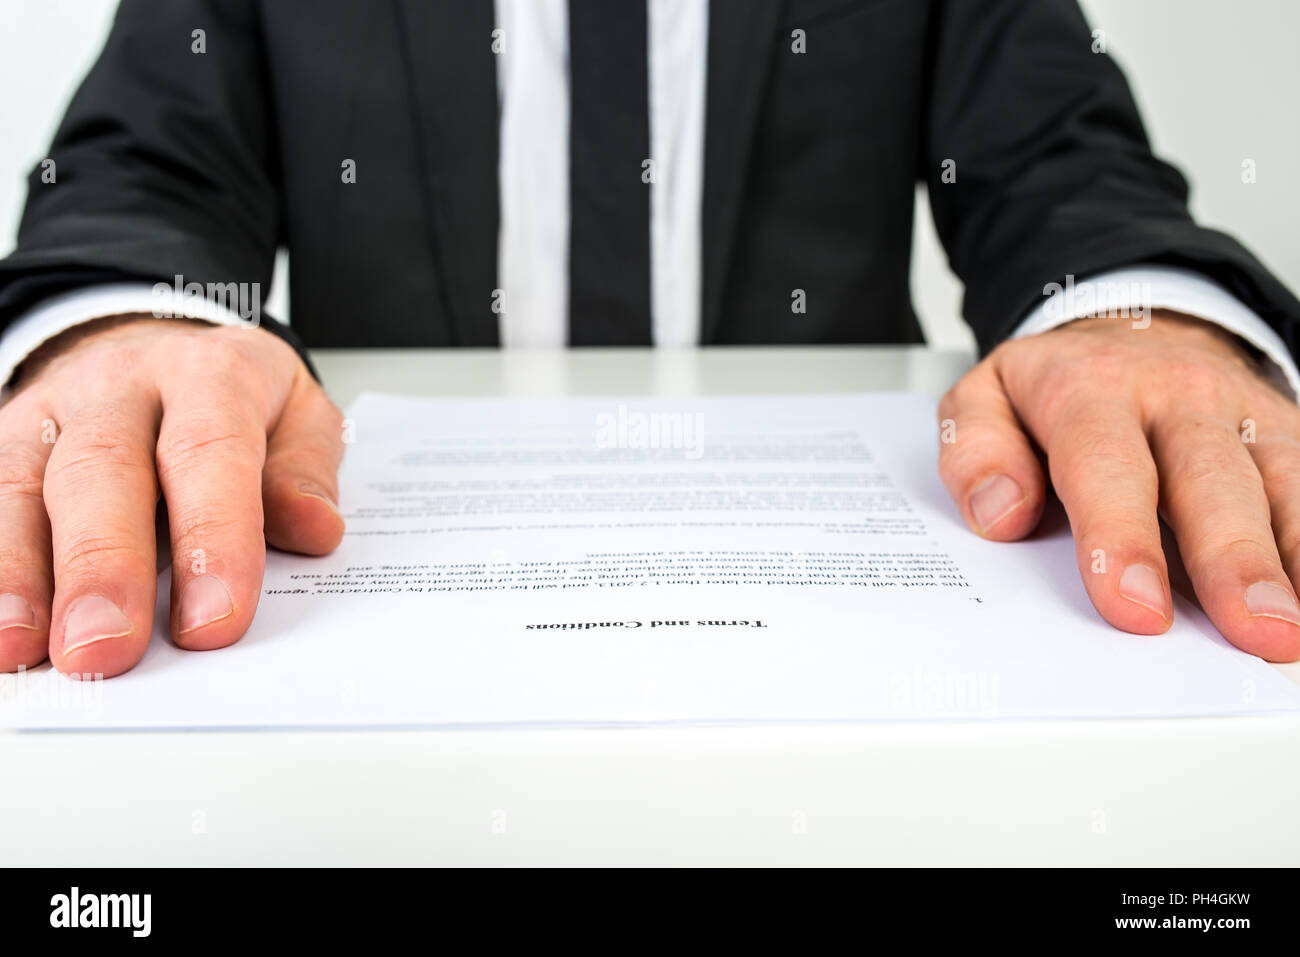 Close up low angle view of the hands of a businessman reading a document or contract resting on either side of the page with focus to the text Terms a - Stock Image